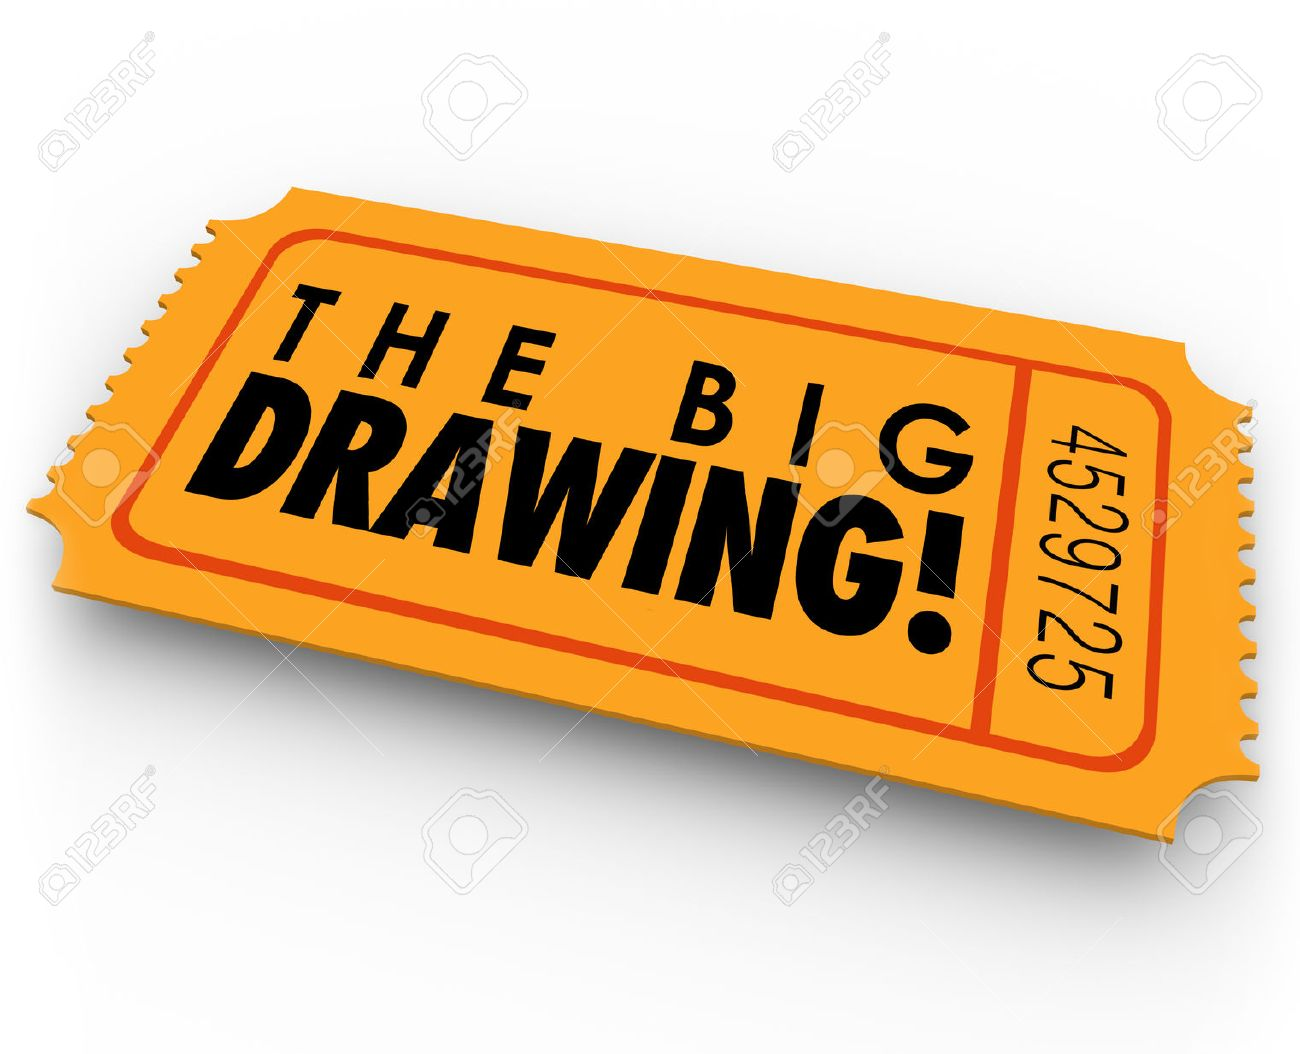 raffle ticket stock photos images royalty raffle ticket raffle ticket the big drawing words on an orange raffle or contest ticket for picking